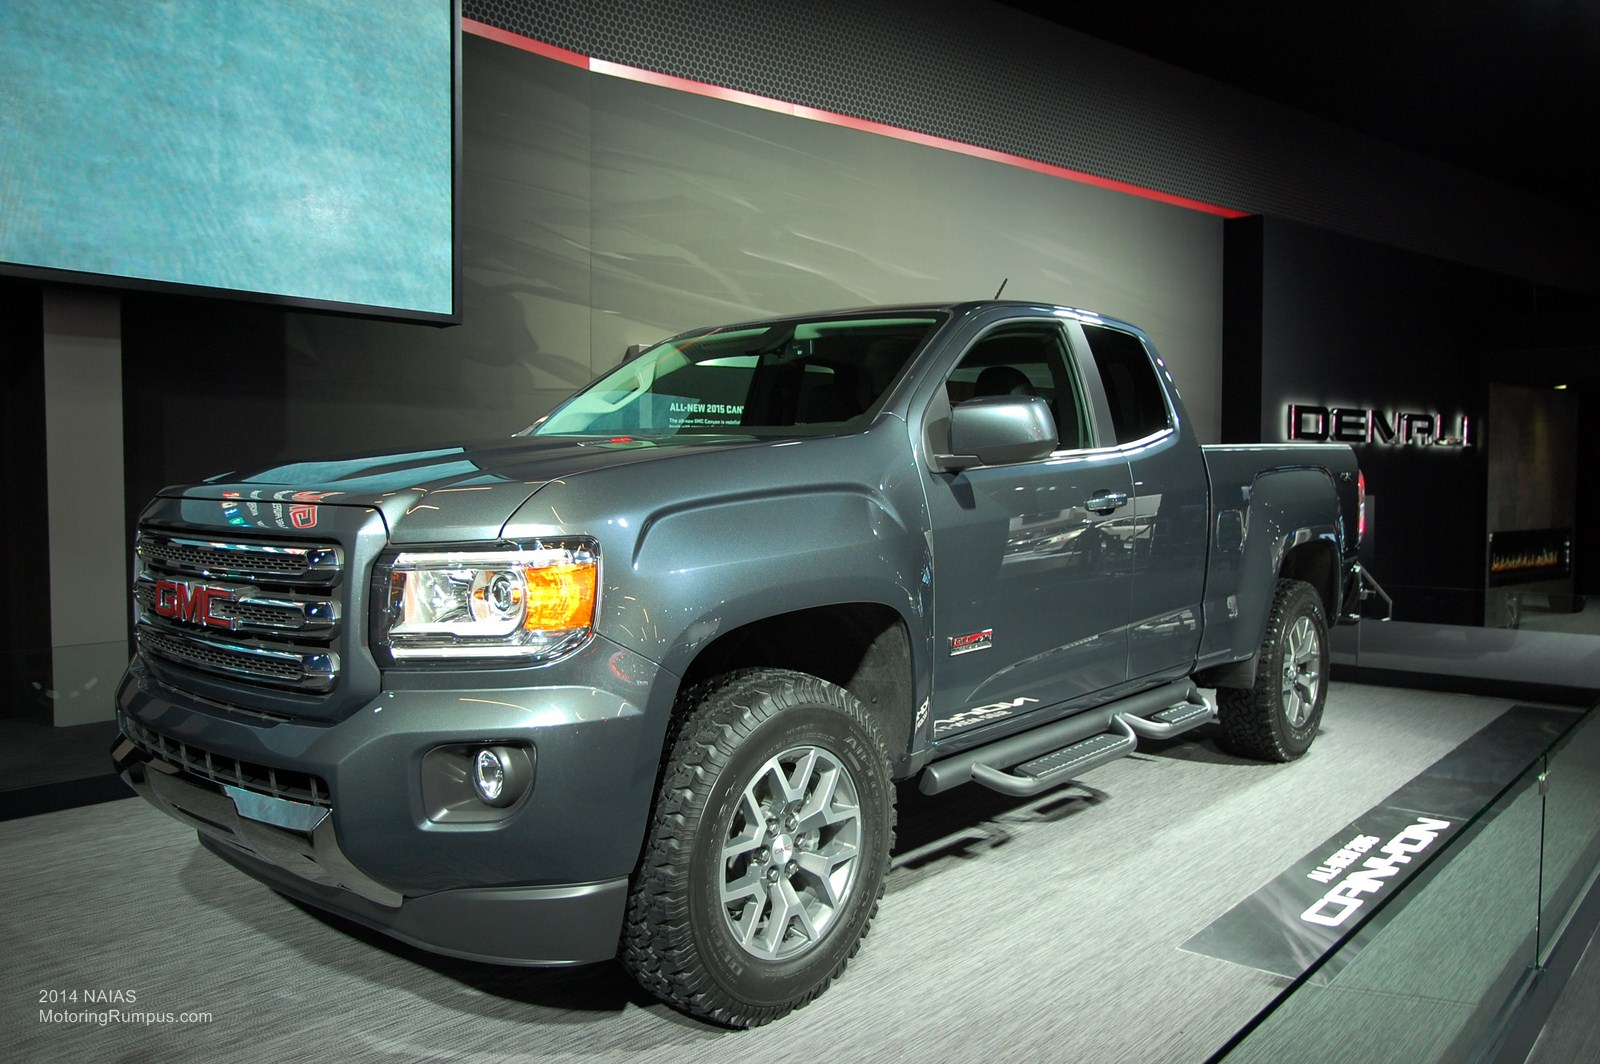 2014 NAIAS GMC Canyon Extended Cab